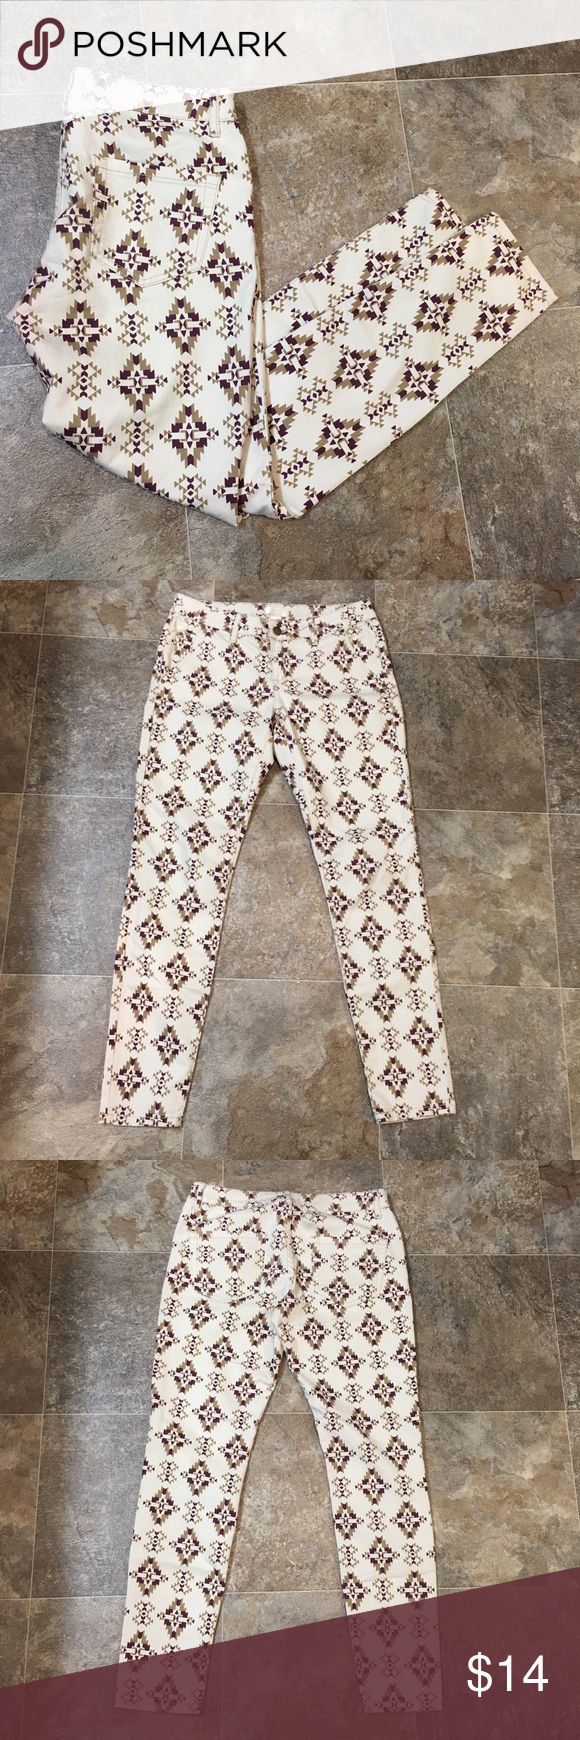 """Forever 21 Aztec jeans Women's white forever 21 jeans. They have an Aztec print on them. They're a size 27 with an inseam of approximately 28"""". They're in great condition with no flaws.   🌸BUNDLE AND SAVE  🌸NO TRADES 🌸REASONABLE OFFERS CONSIDERED  🌸FEEL FREE TO ASK QUESTIONS 🌸I DO NOT MODEL Forever 21 Jeans Skinny"""